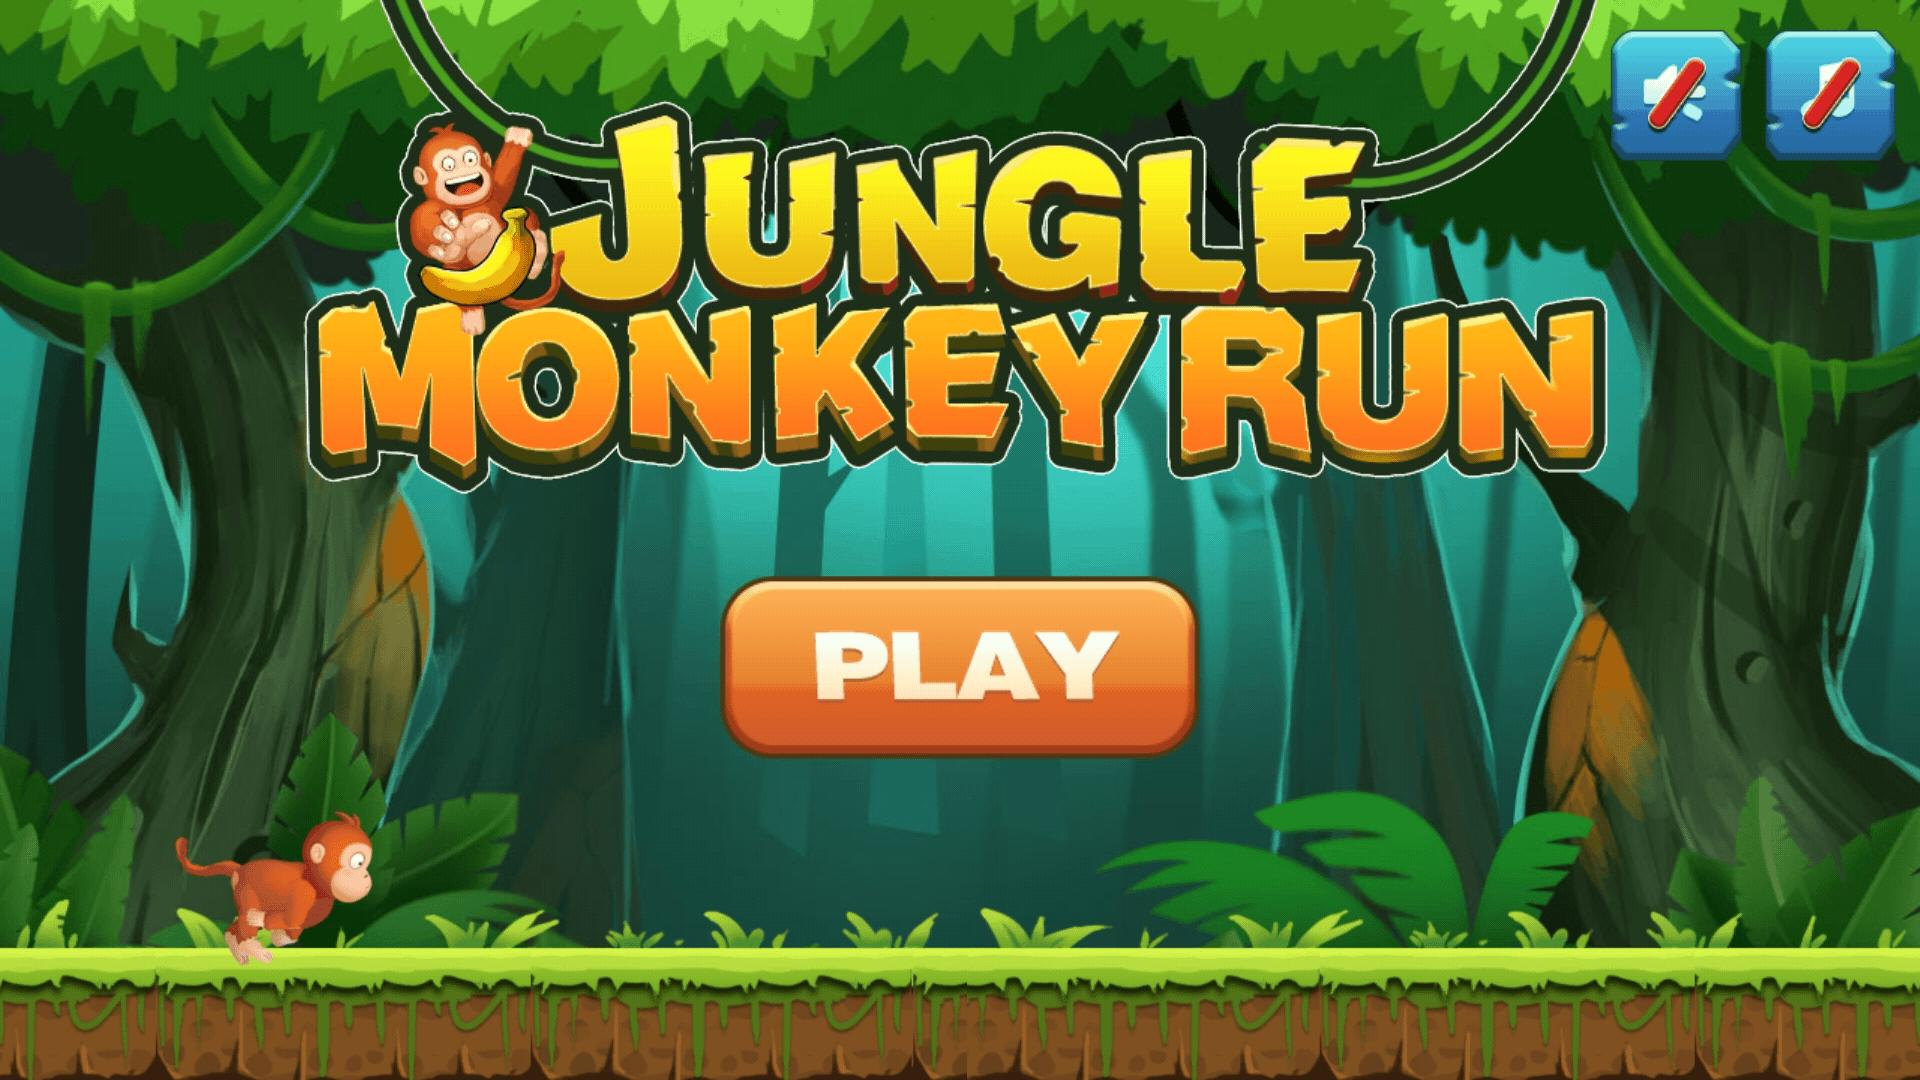 Jungle Monkey Run 1.7.7 Screenshot 6